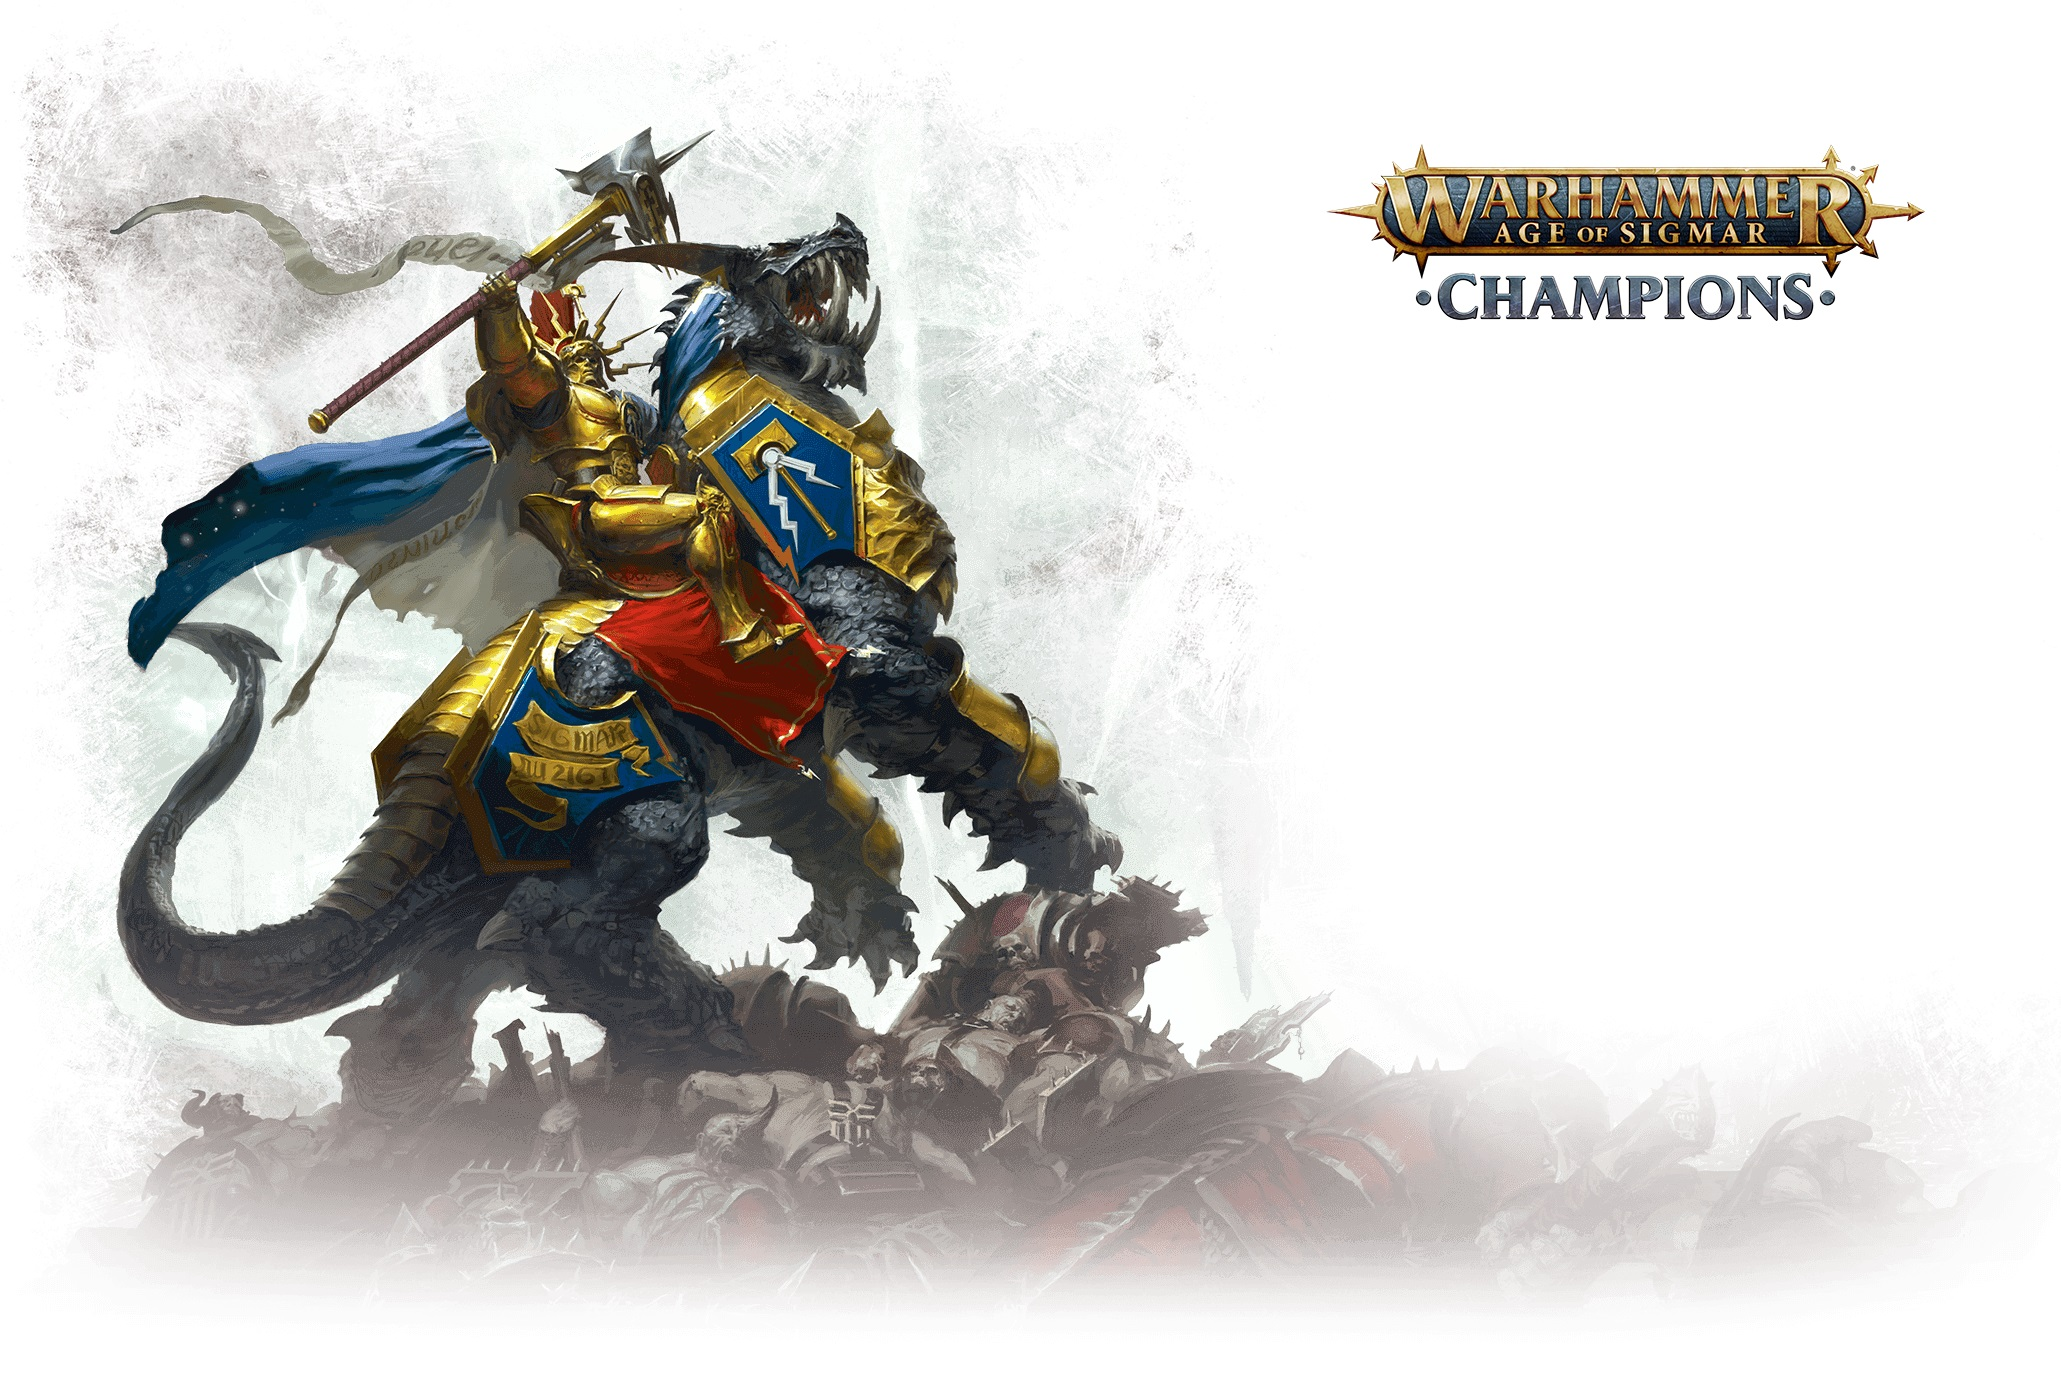 A Warhammer AR fantasy card game is coming to PC this year